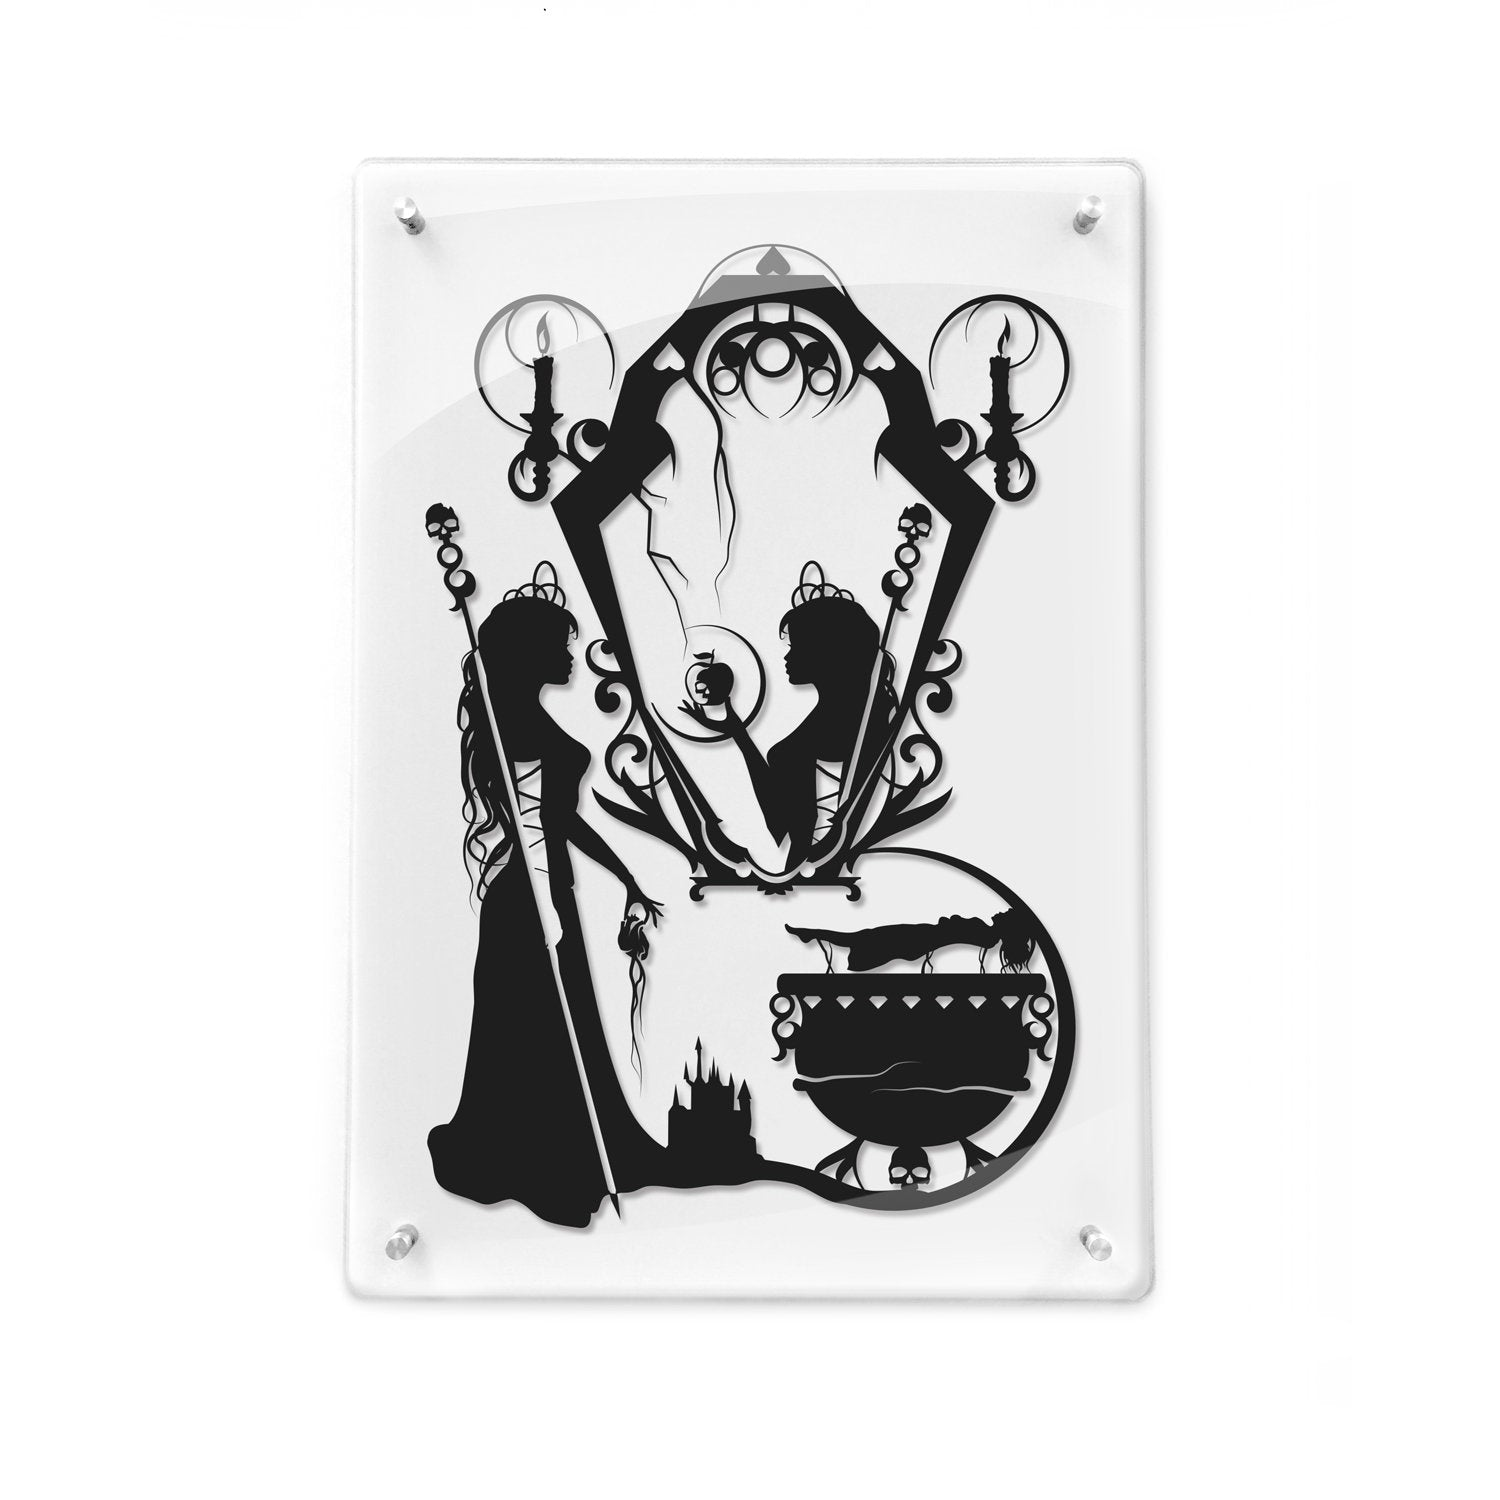 FRAMED The Evil Queen Snow White seven dwarfs Magic Mirror Poison apple Brothers Grimm Once upon a time Evil Step Mother Evil Queen gift